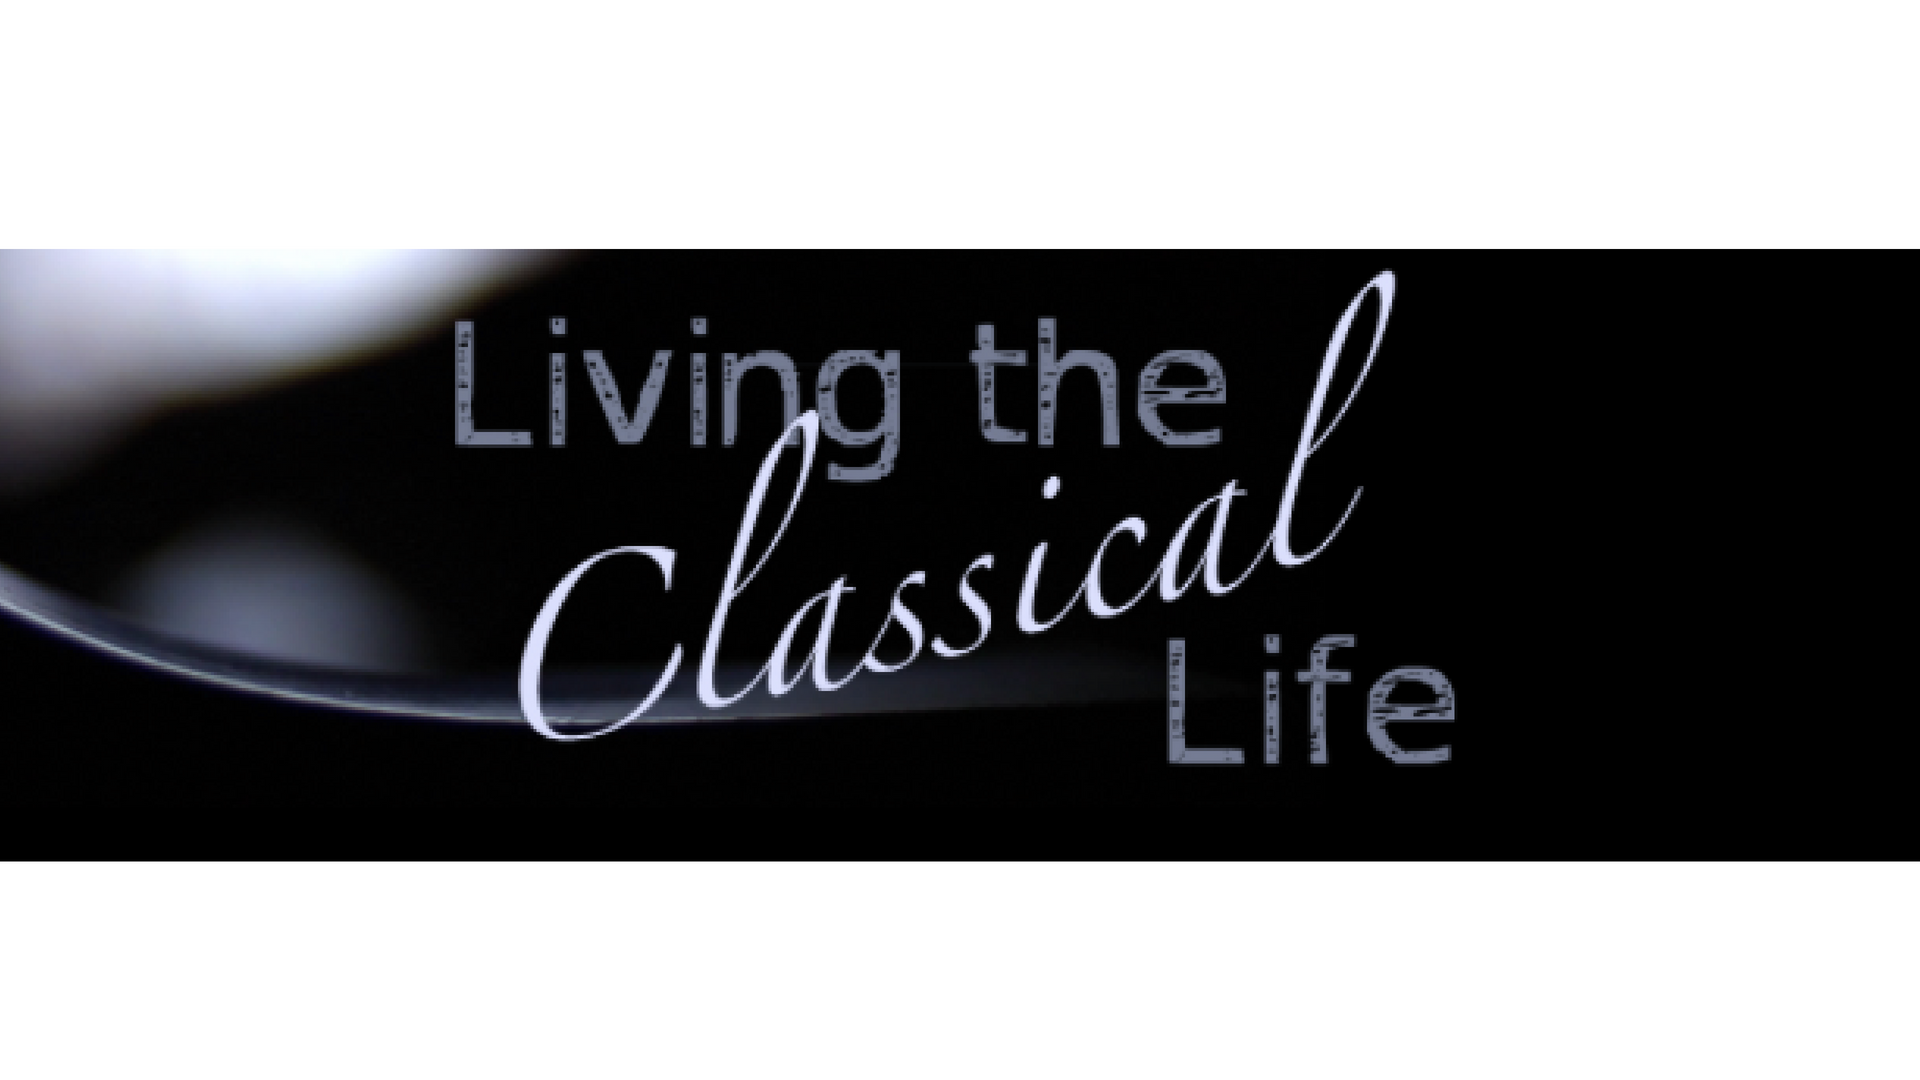 Living the Classical Life